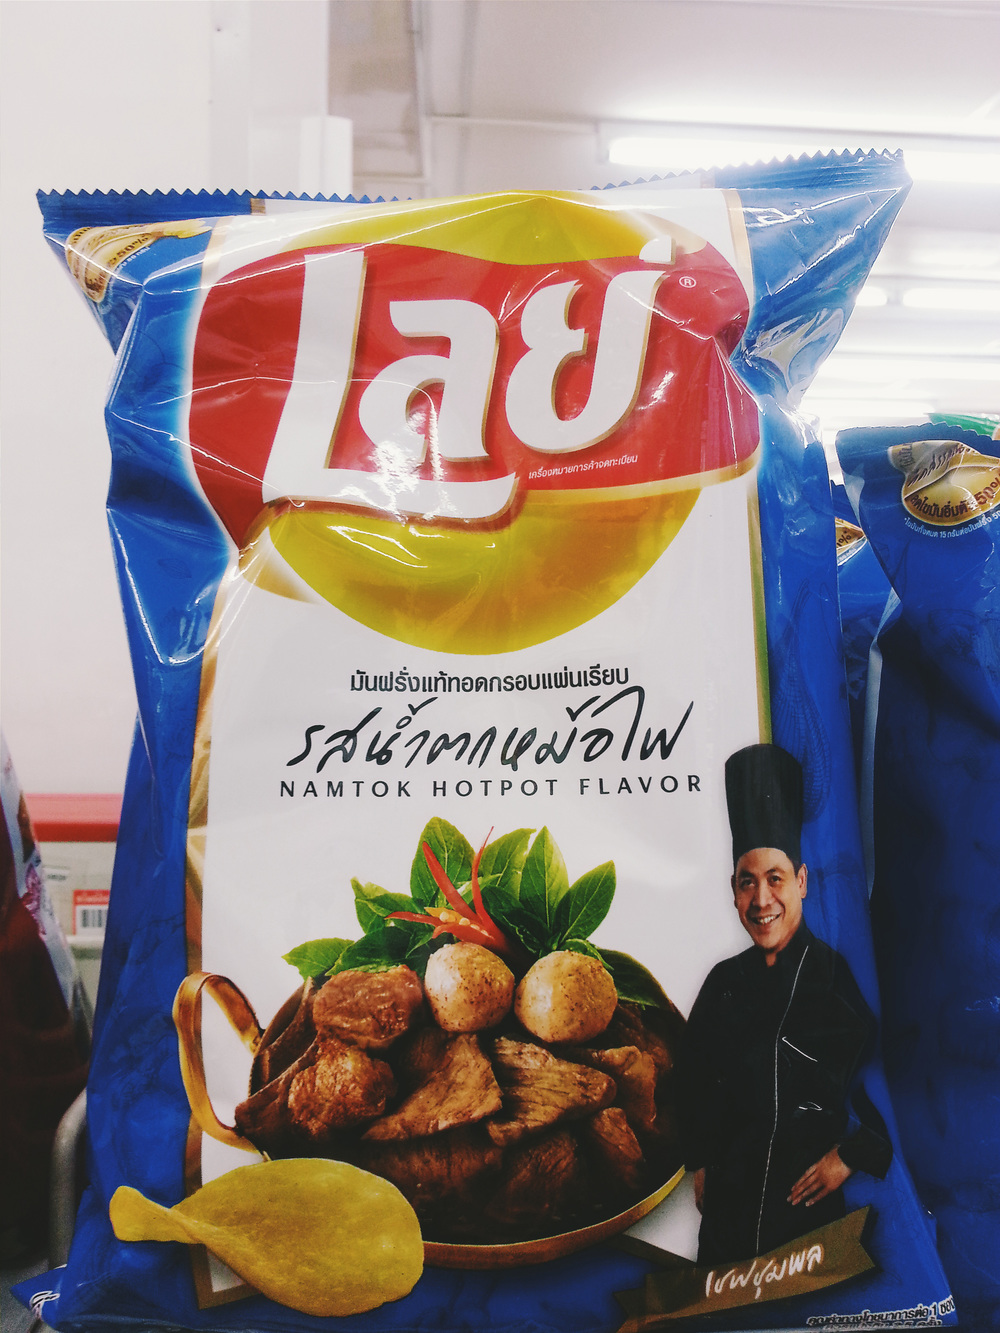 thailand lays chips